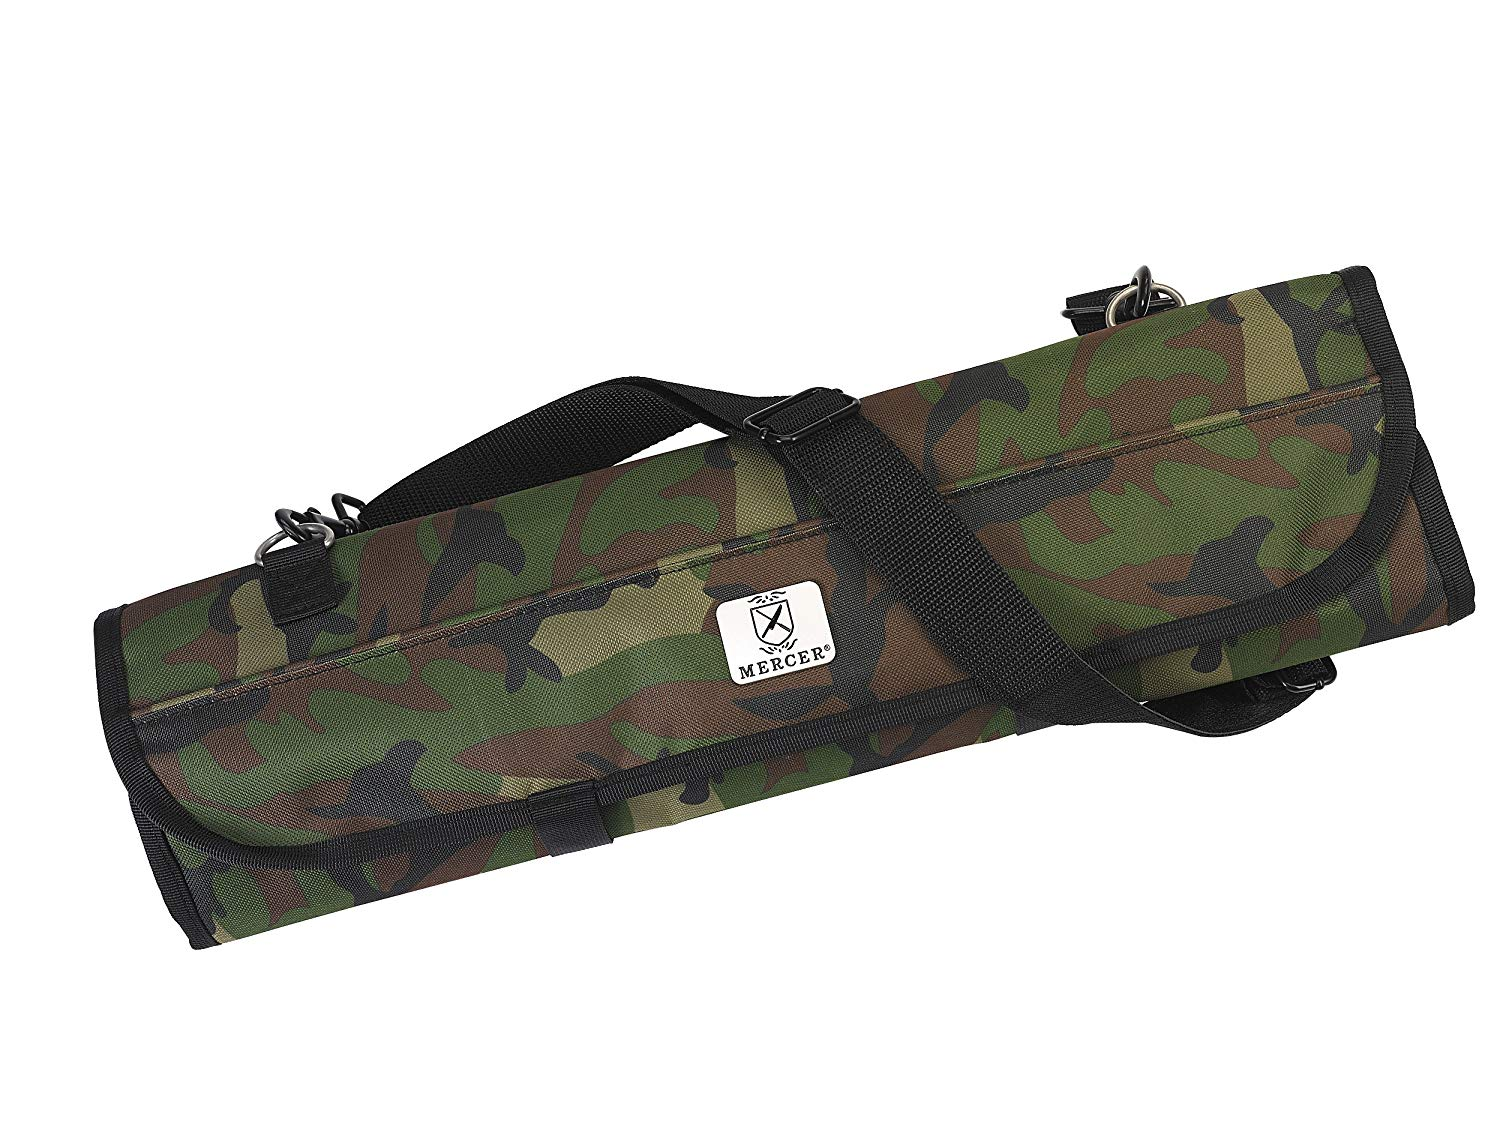 Mercer Culinary 7-Pocket Knife Roll Storage Bag, One Size, Camouflage